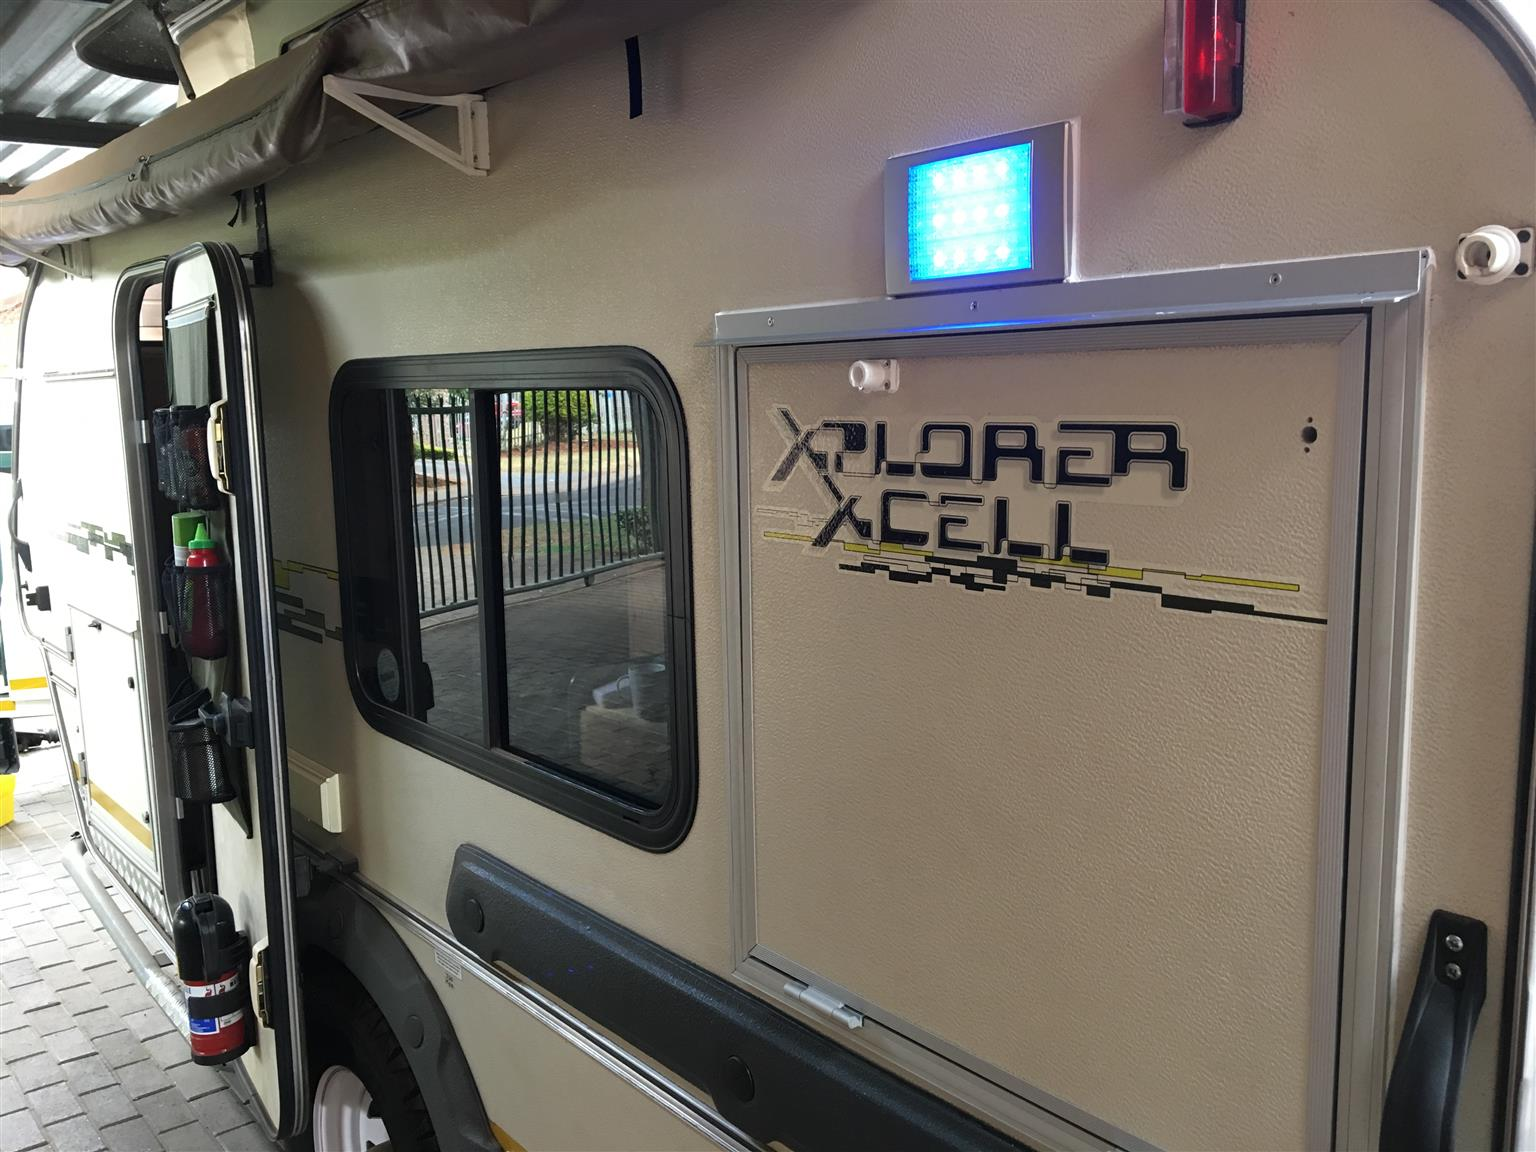 Xplorer excell 2011